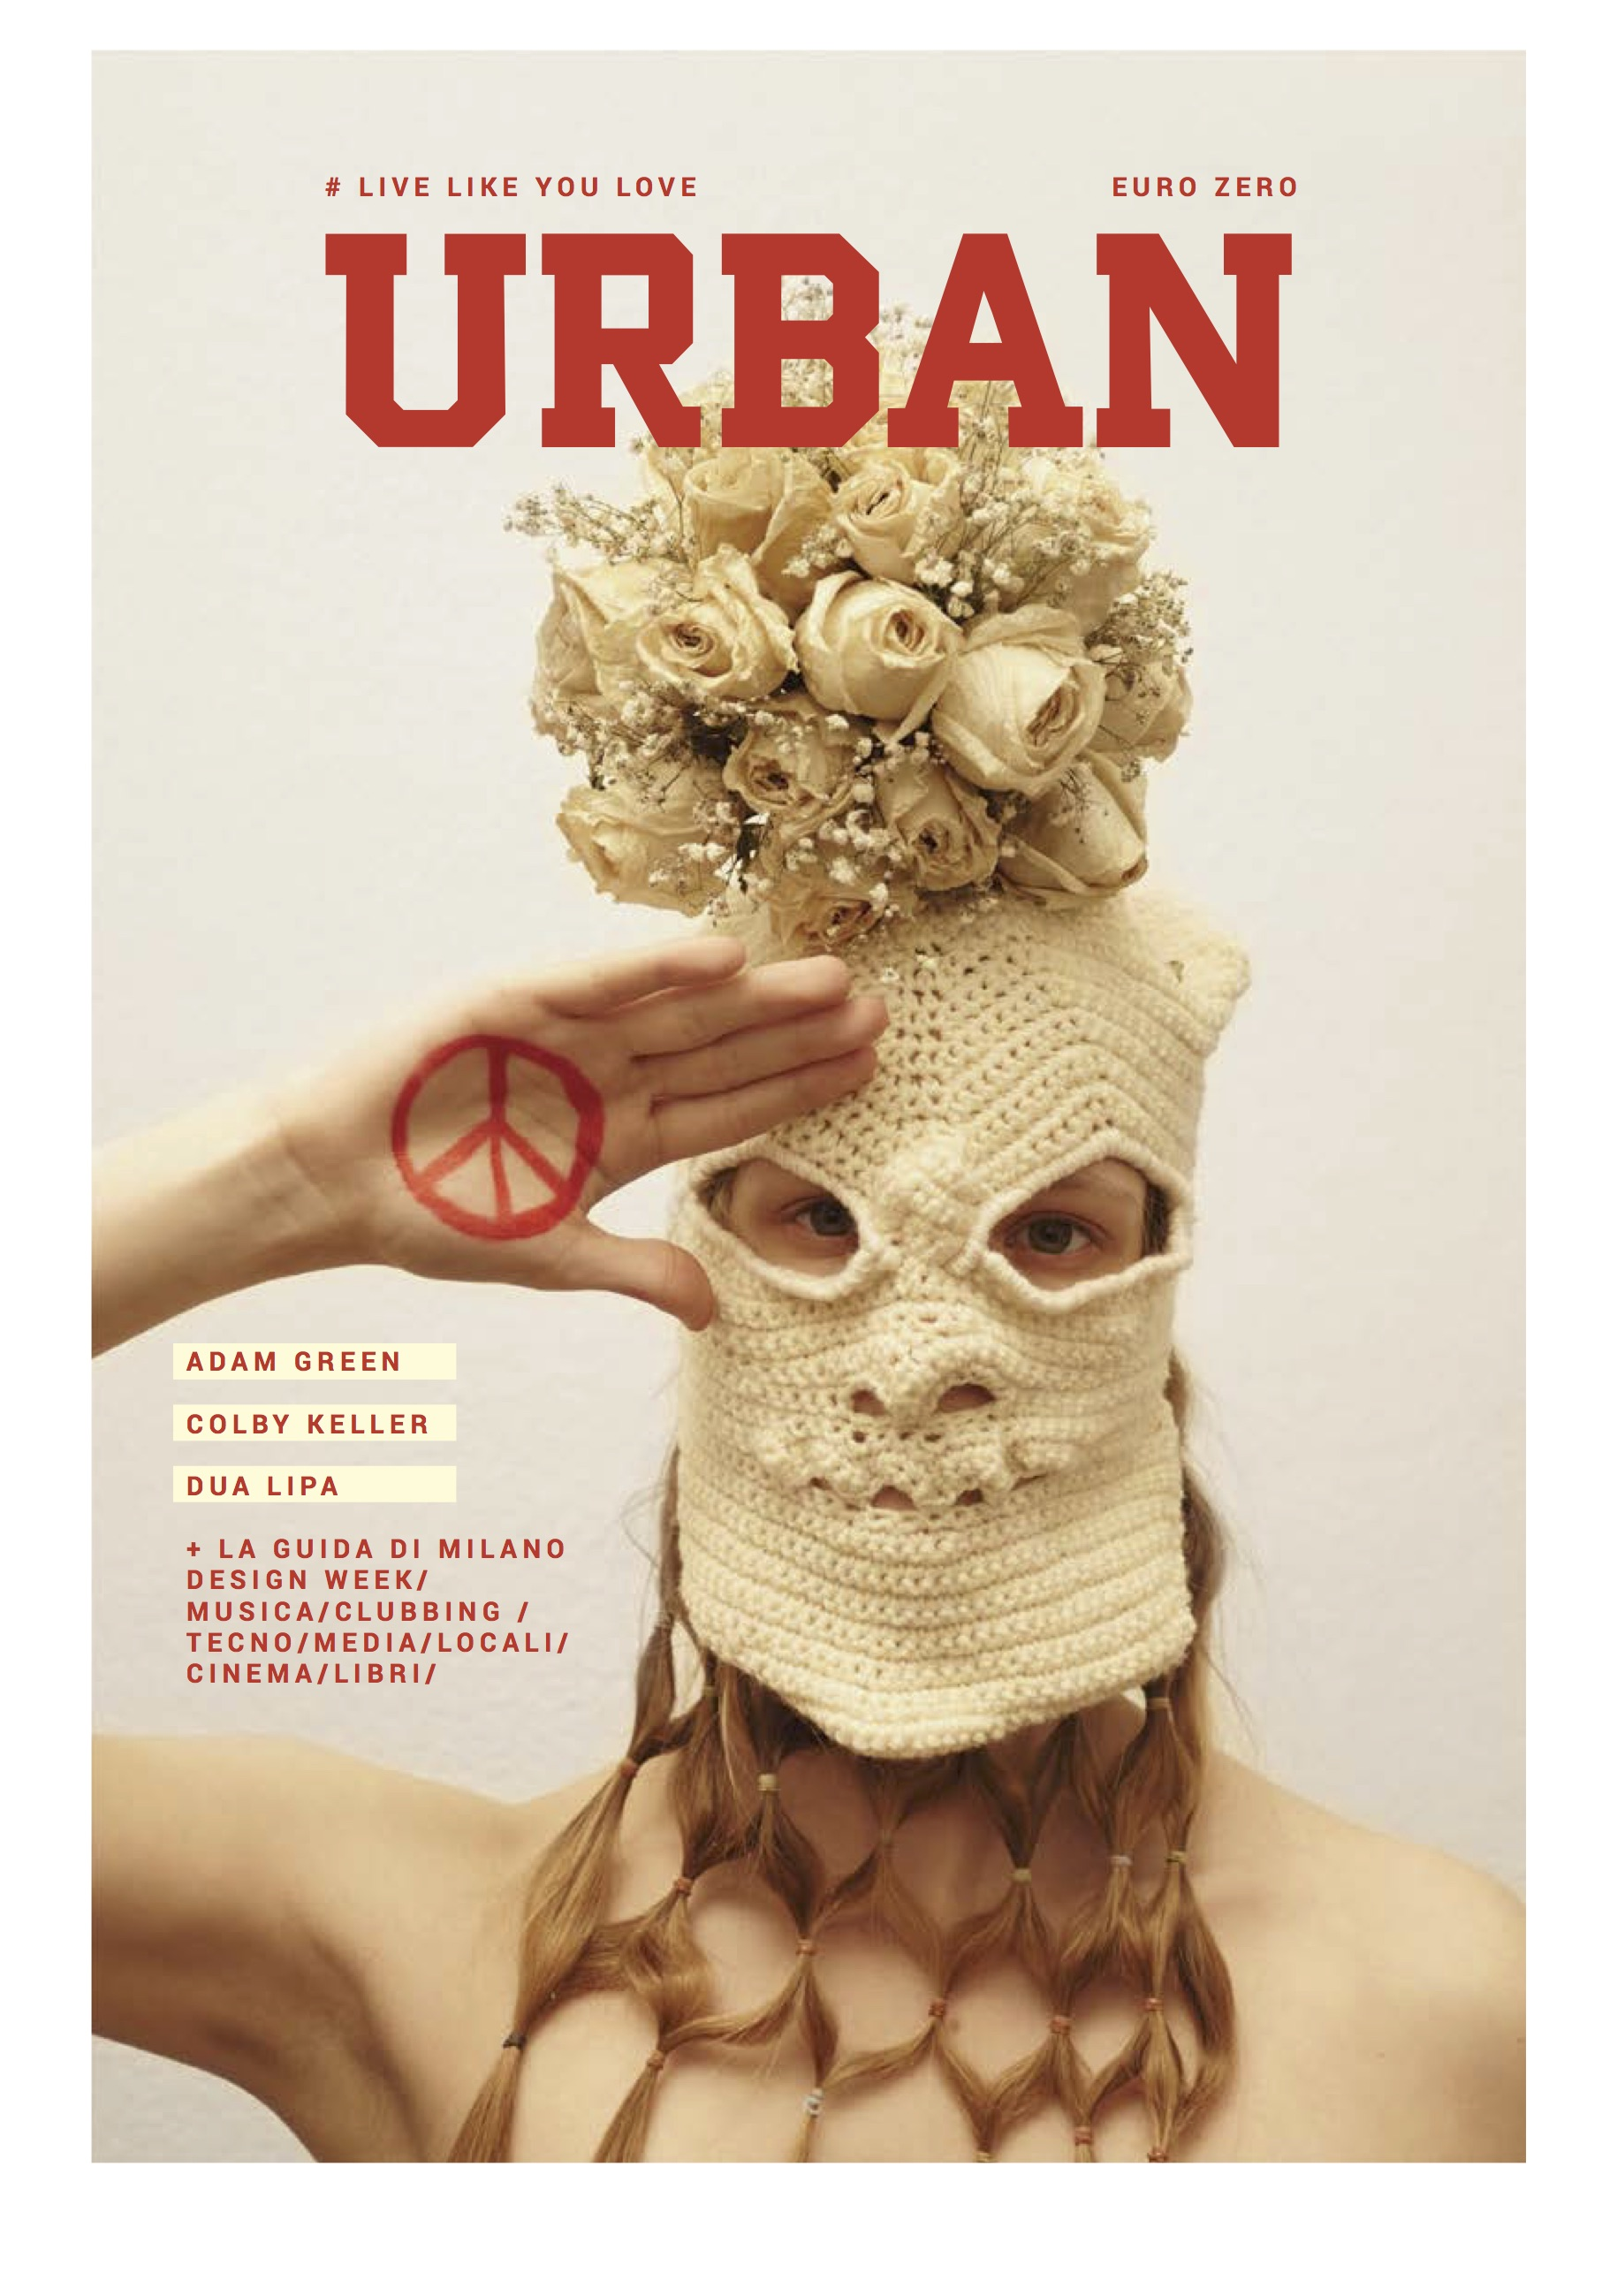 URBAN live like you love